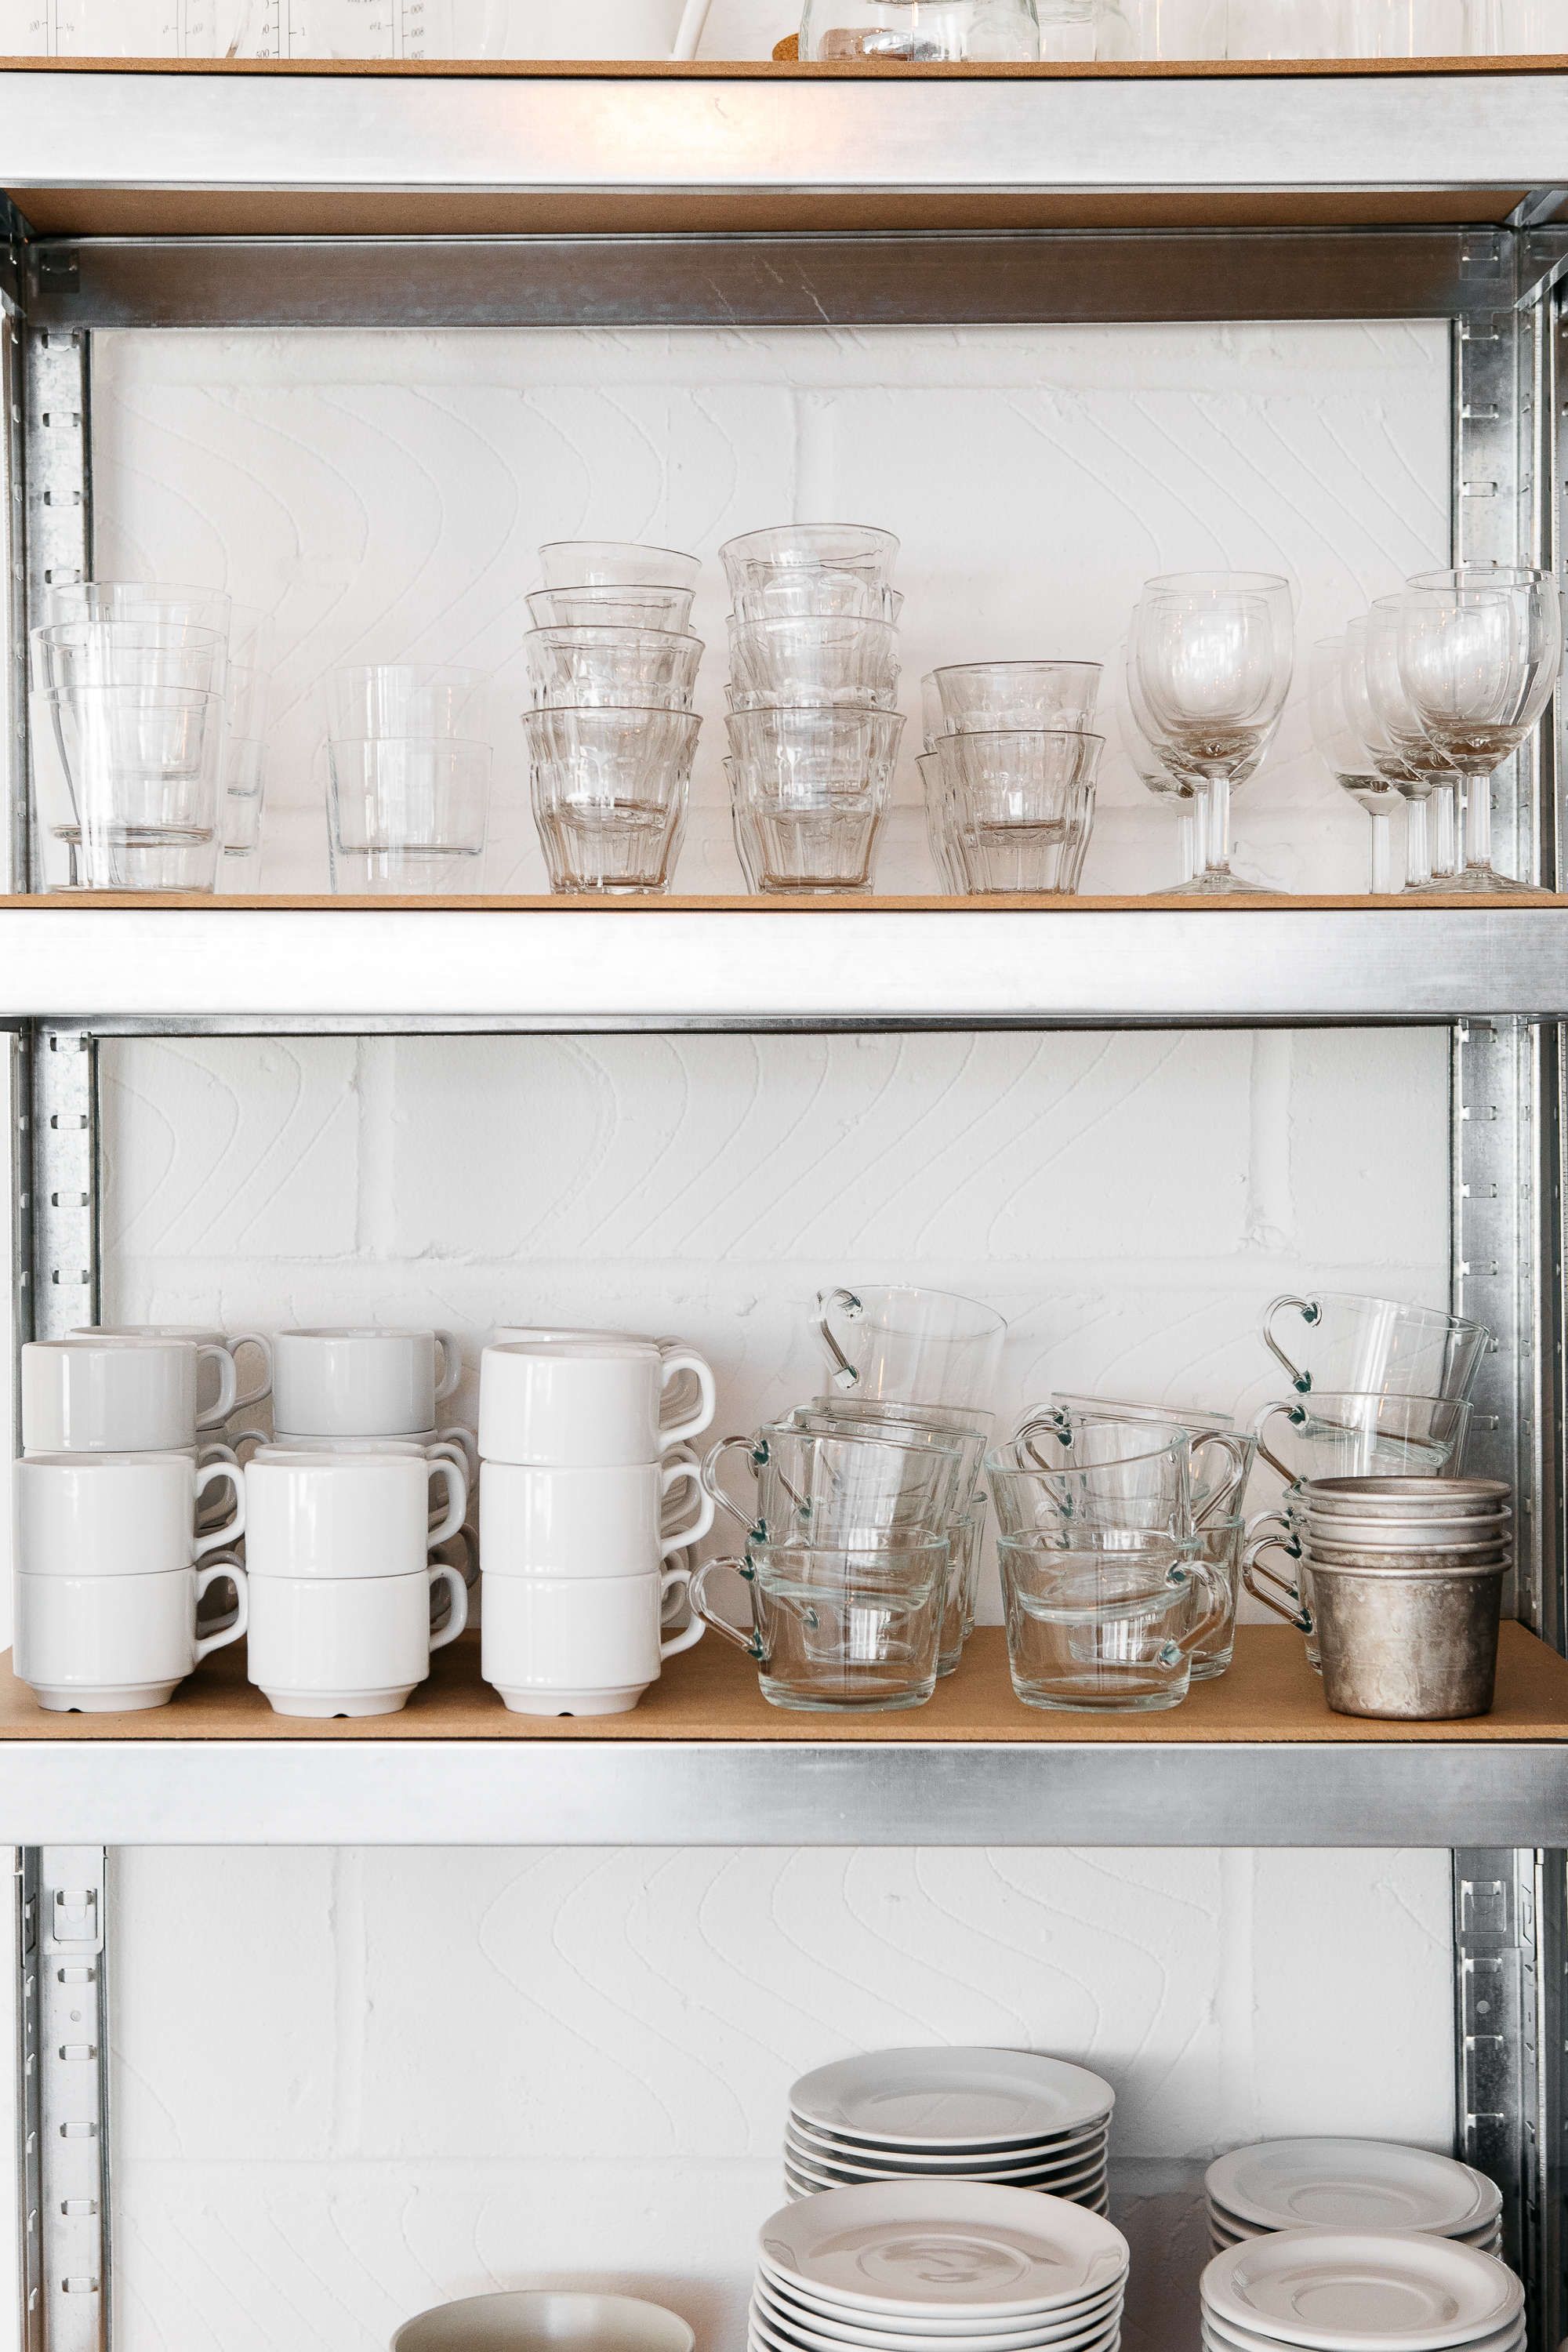 clear glass tumblers and white ceramic teacups and saucers on stainless steel i 22